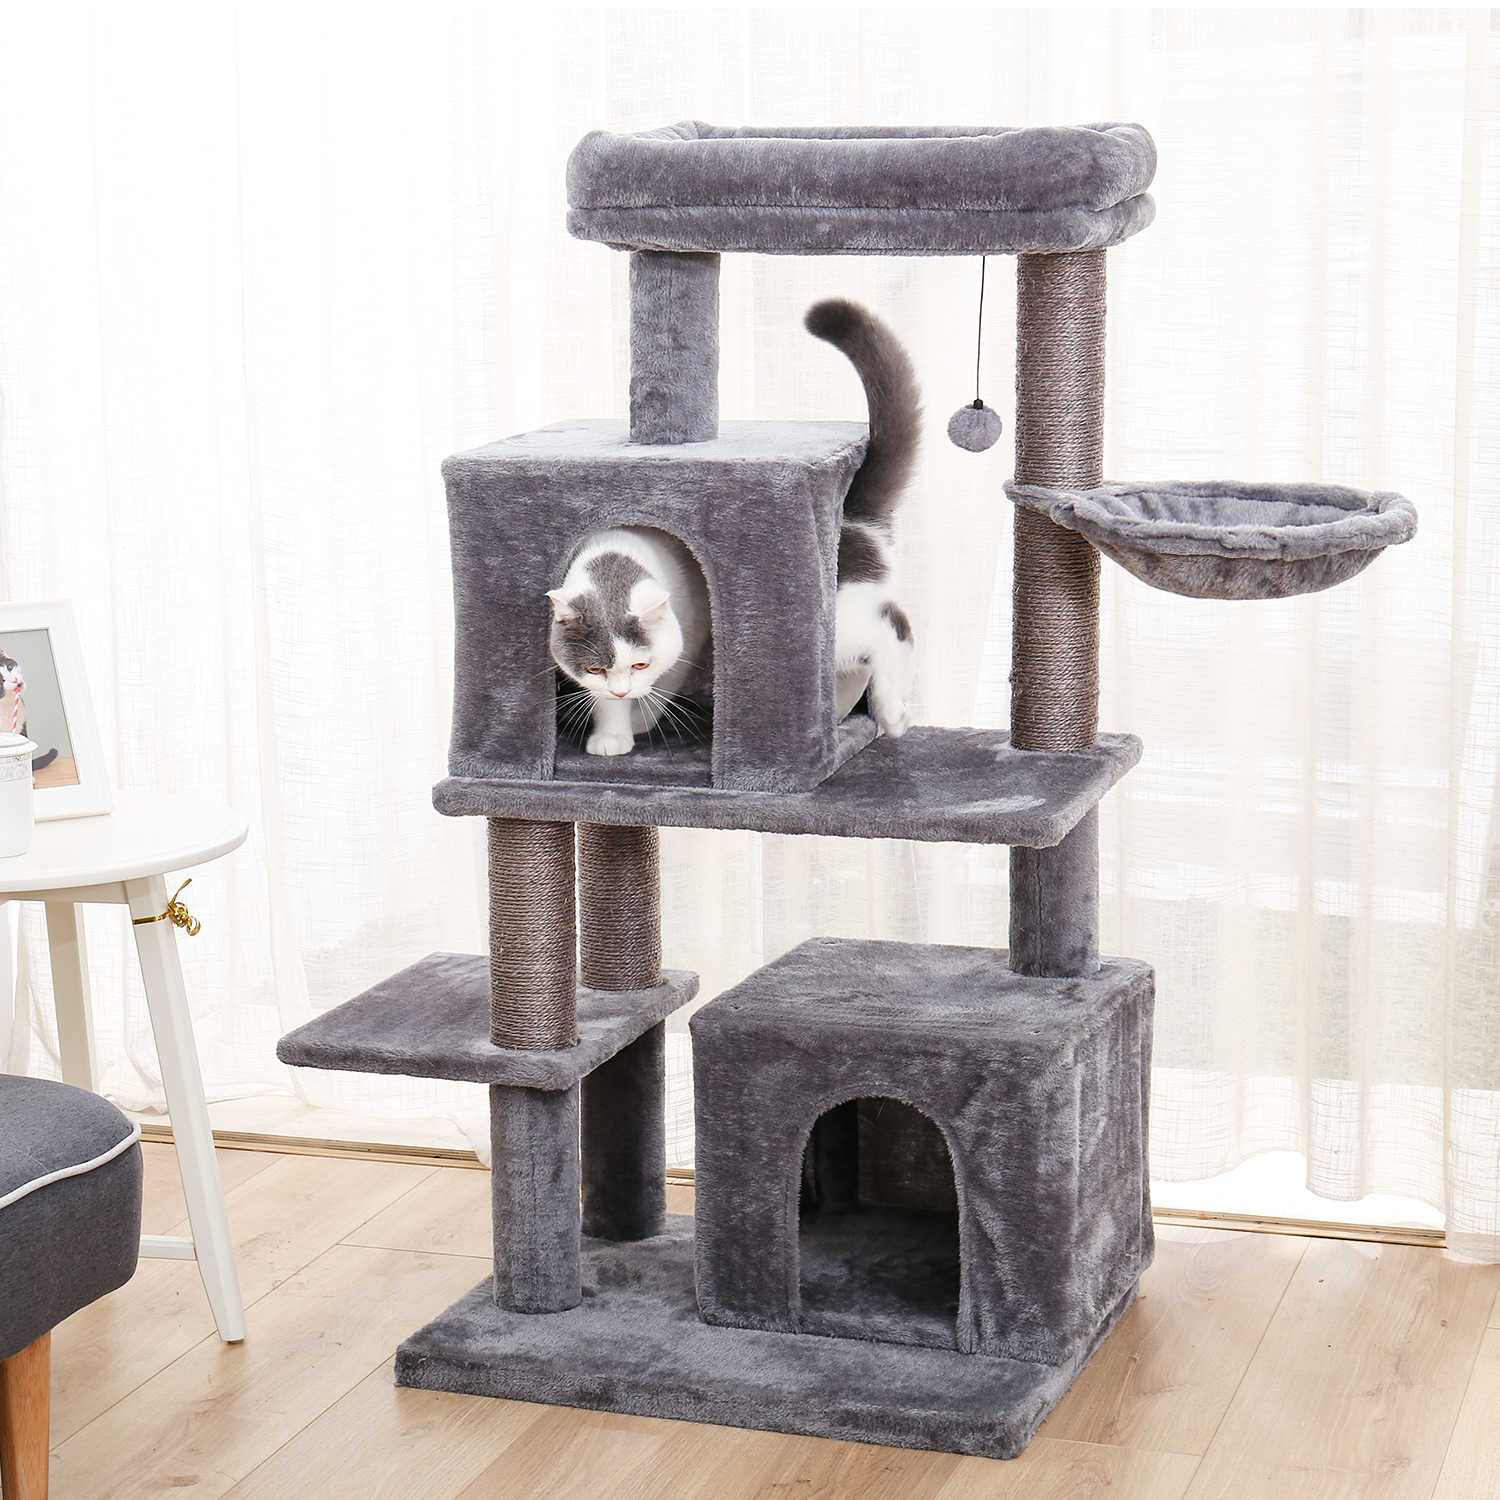 Domestic Delivey Pet Toy Cat Furniture